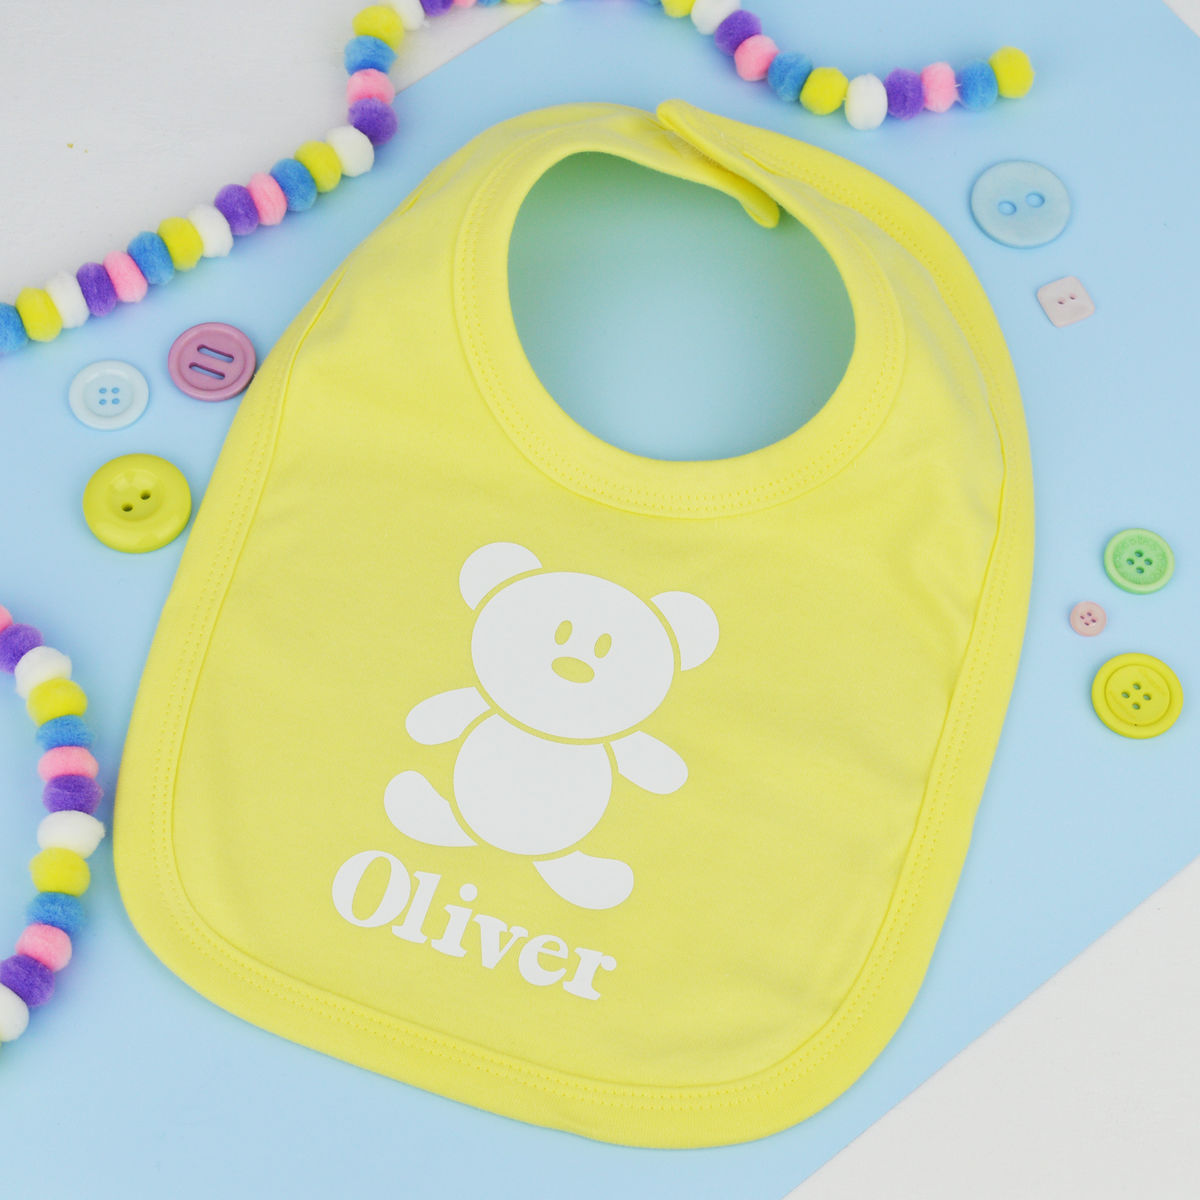 Personalised Teddy Bear Bib - product image